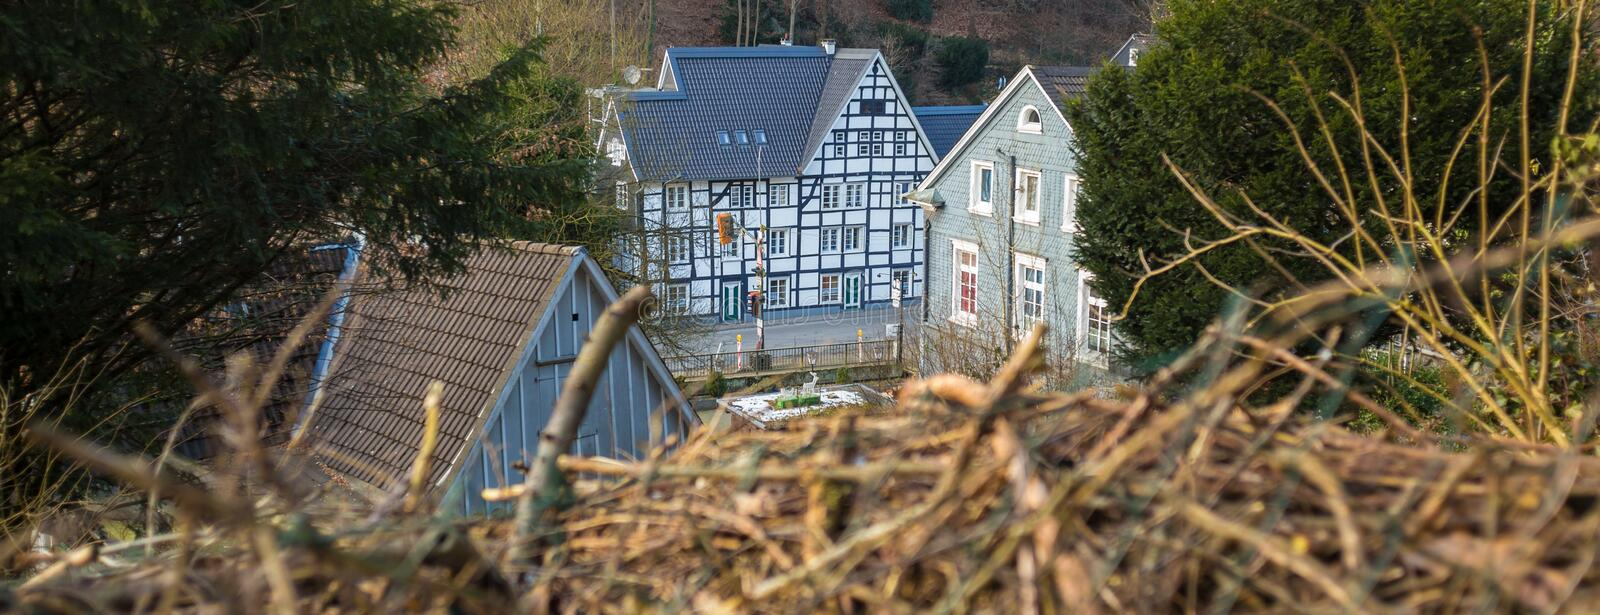 Historic town burg near solingen germany. The historic town burg near solingen germany royalty free stock photography